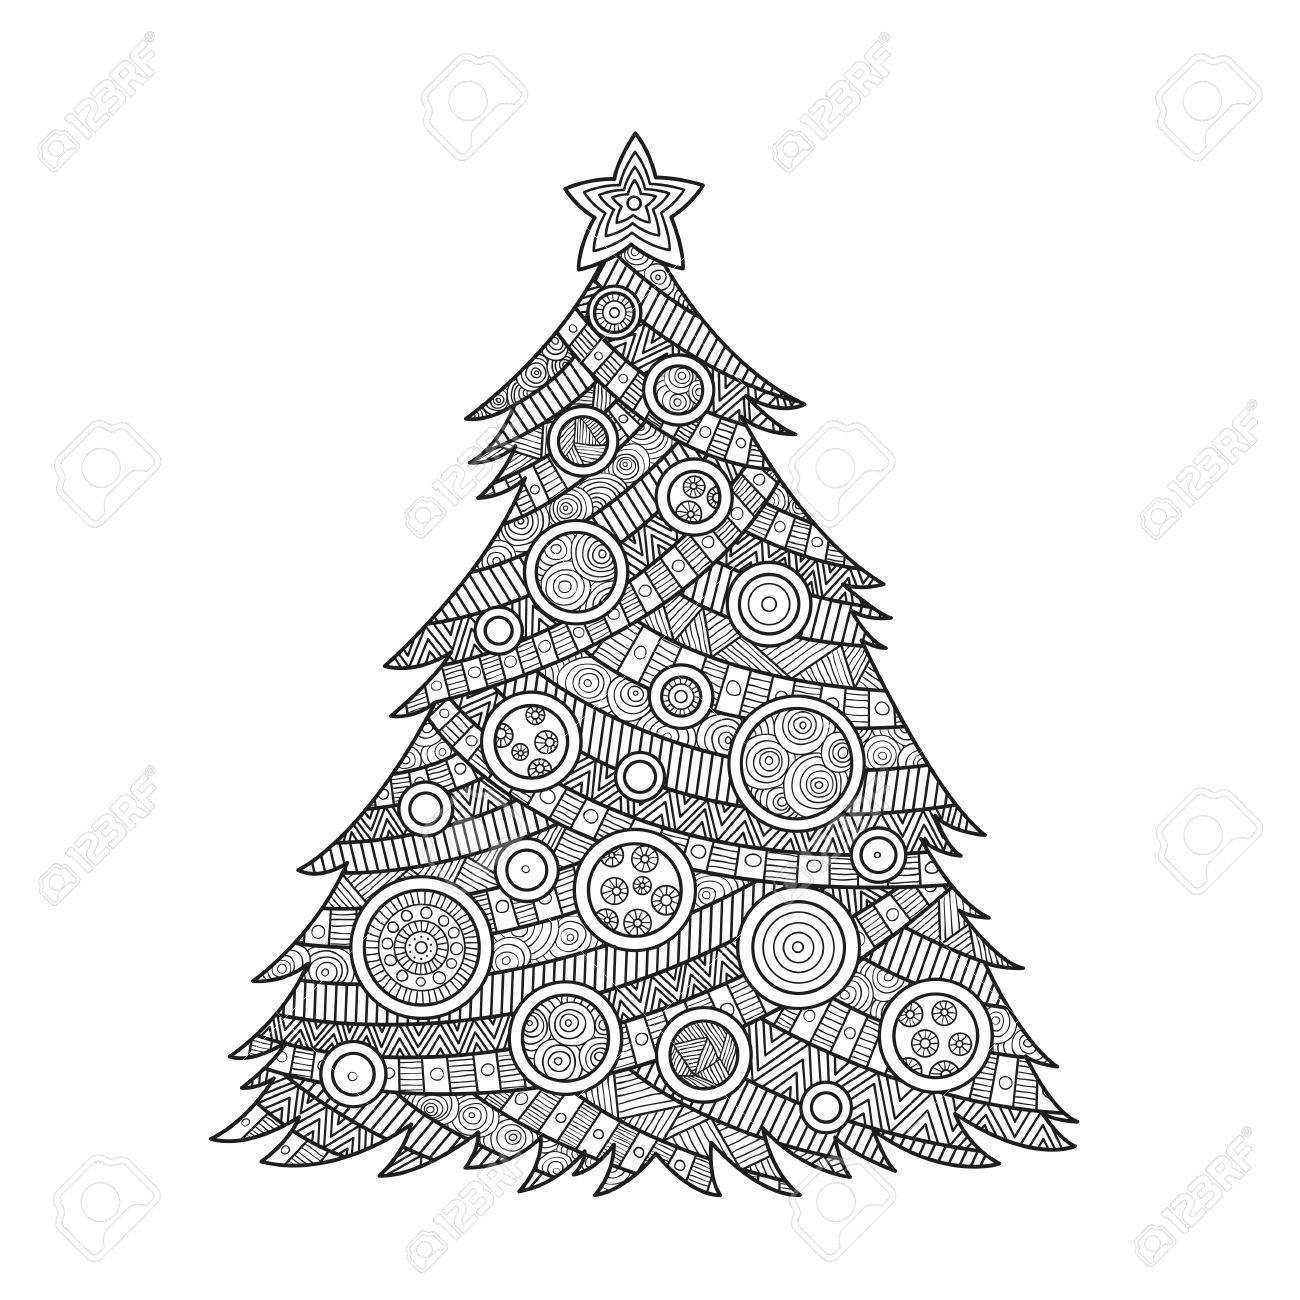 Illustration Coloring For Adults Christmas Tree Coloring Ink ...